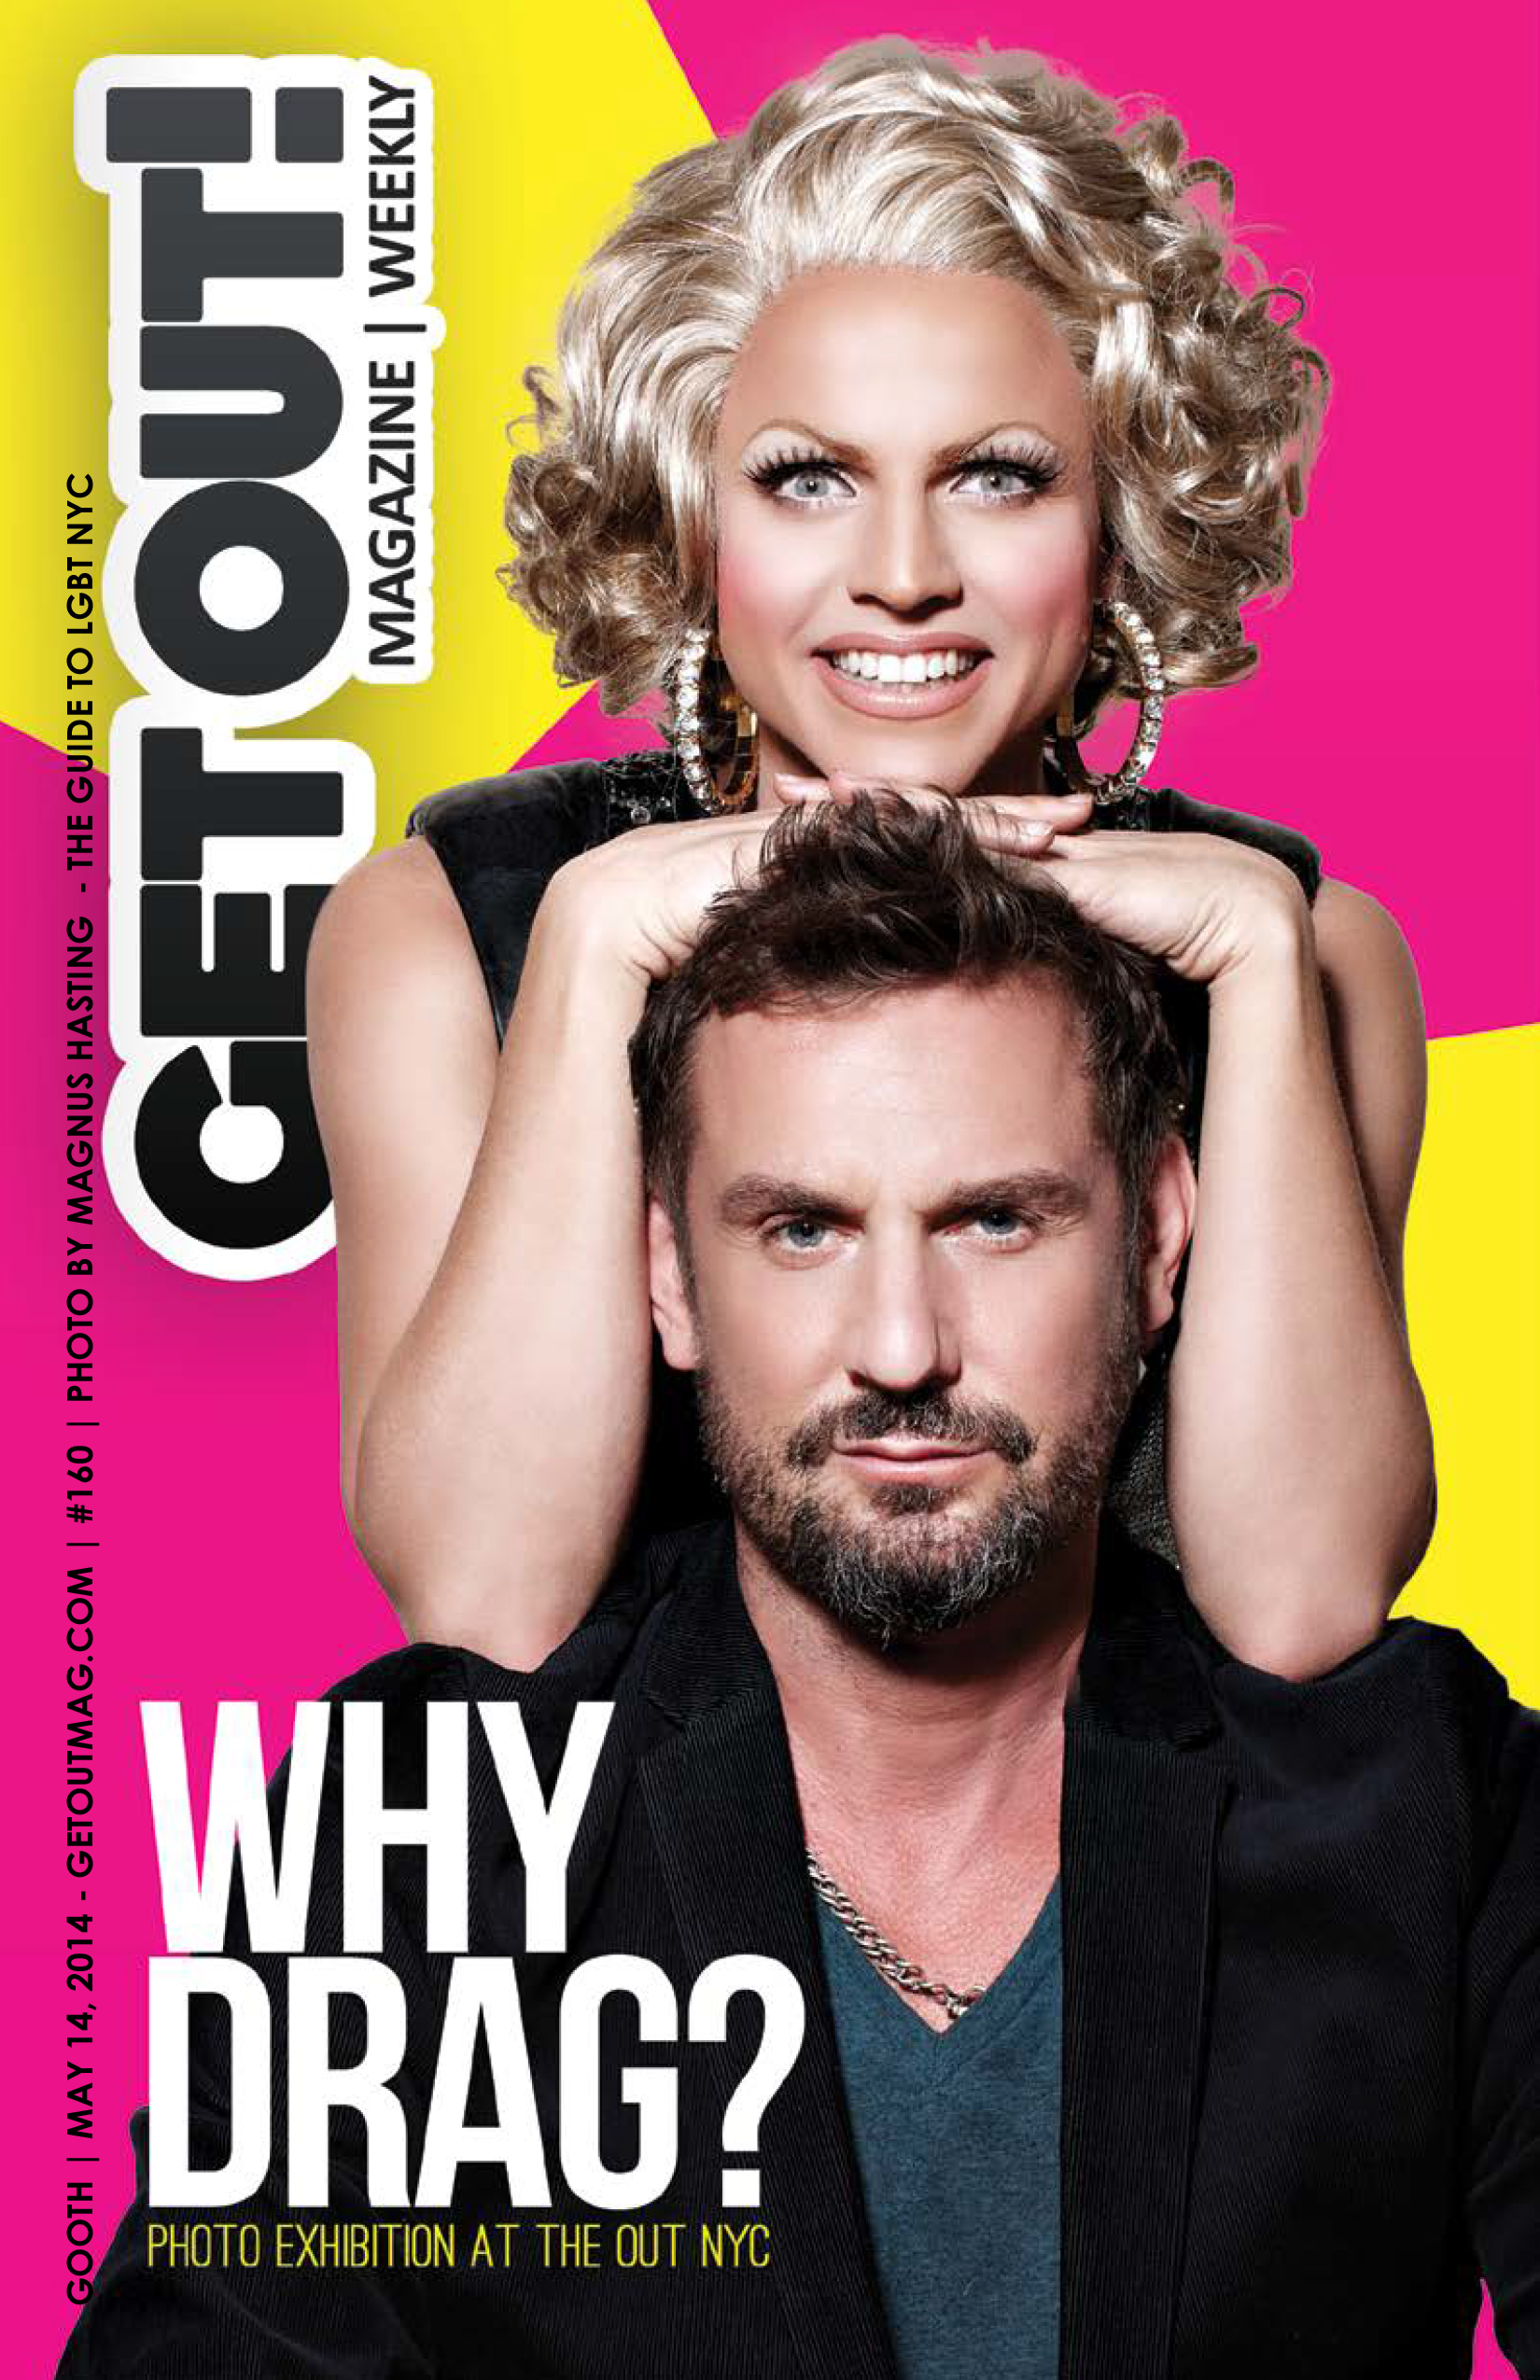 Get Out Magazine-1.jpg